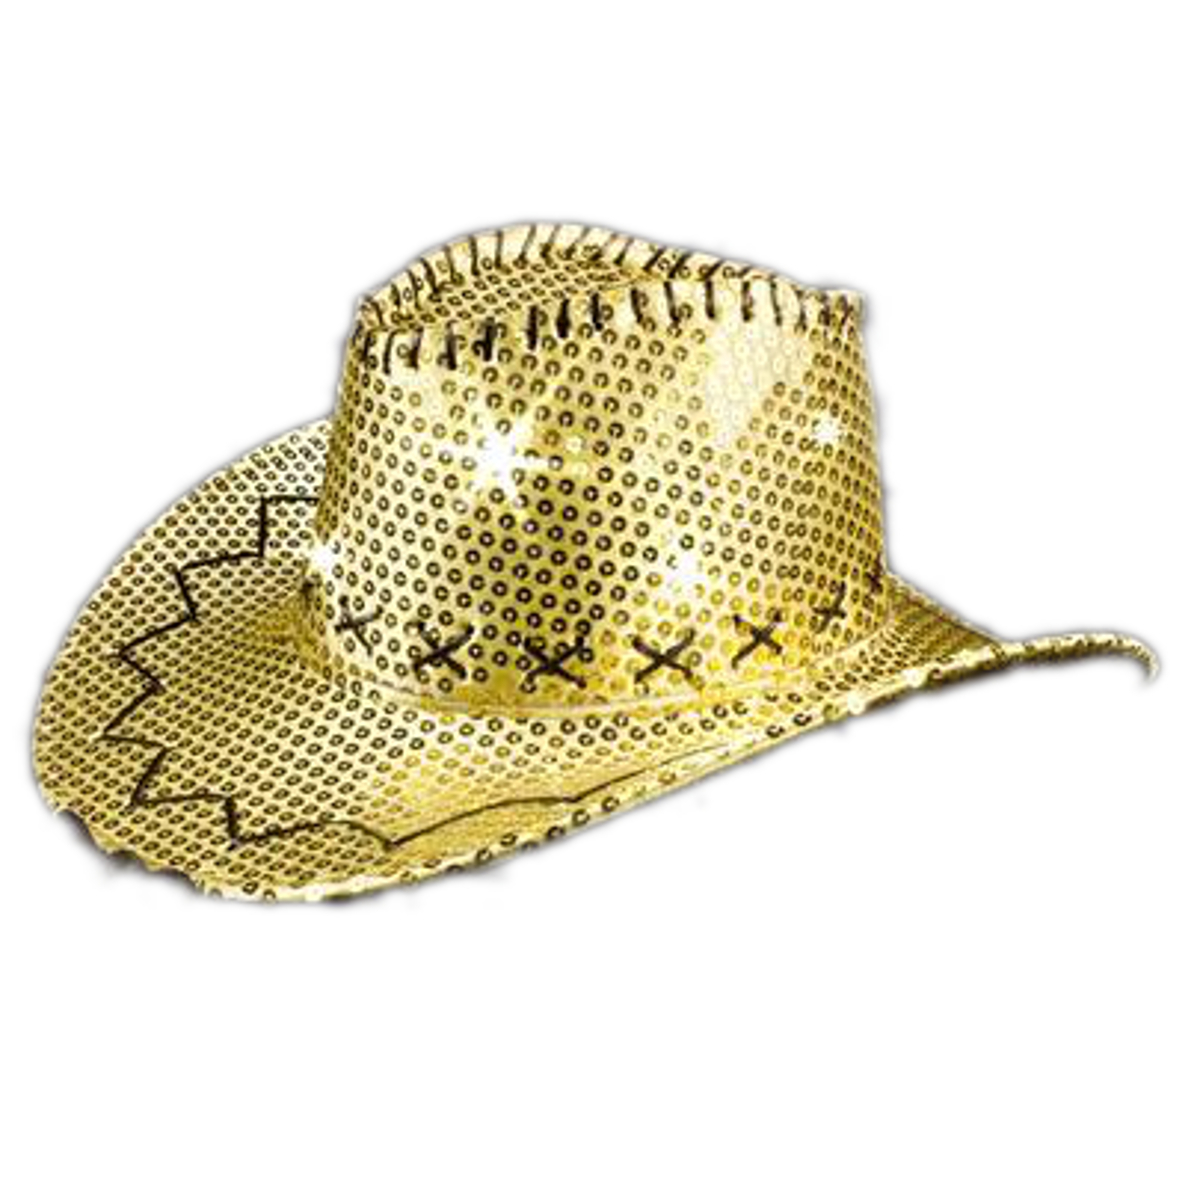 LED Sequin Cowboy Hat with Fancy Stitching Gold All Products